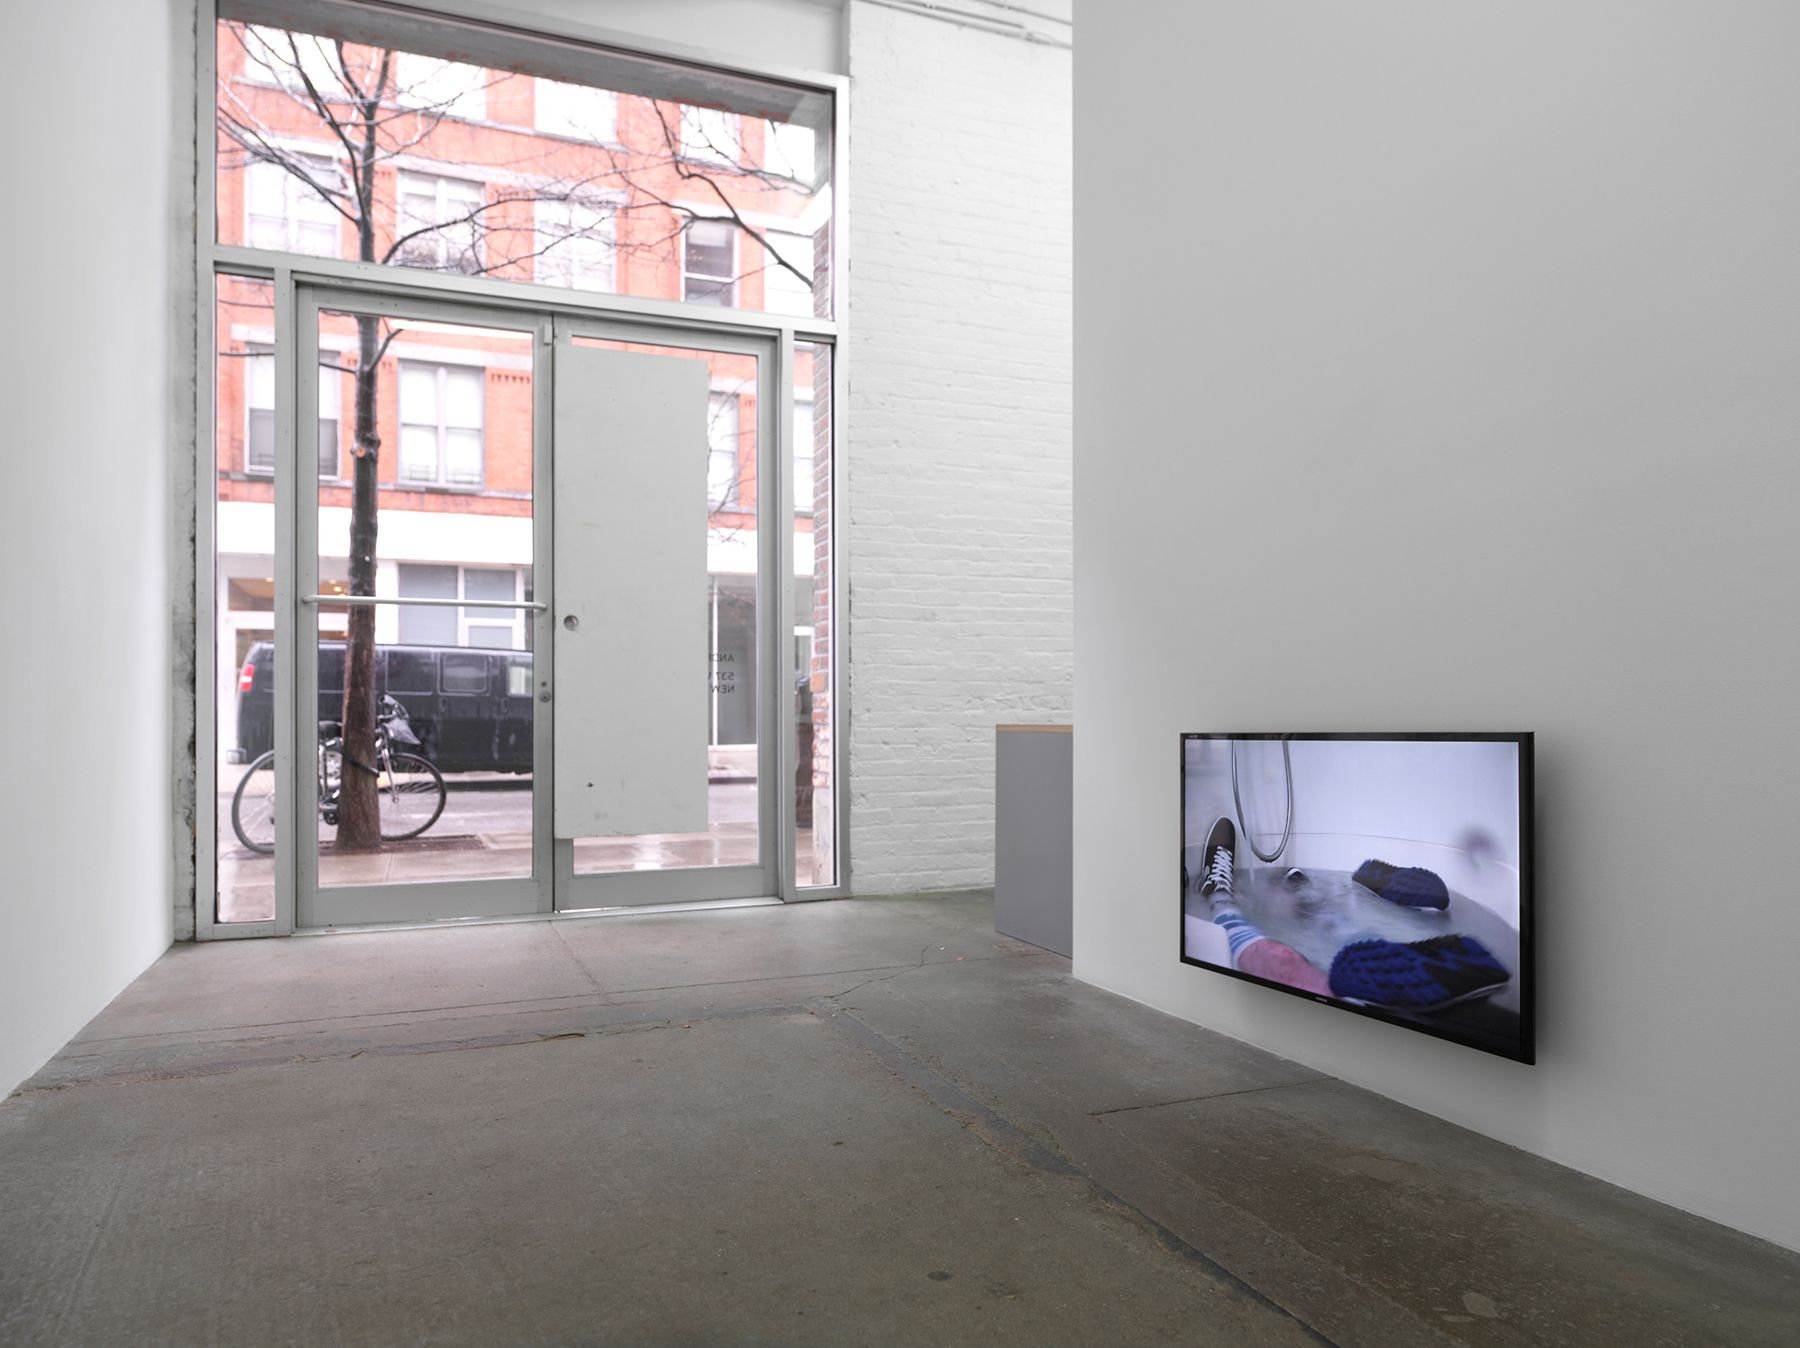 Andrew Kreps Gallery, New YorkMarch 31 - May 7, 2016